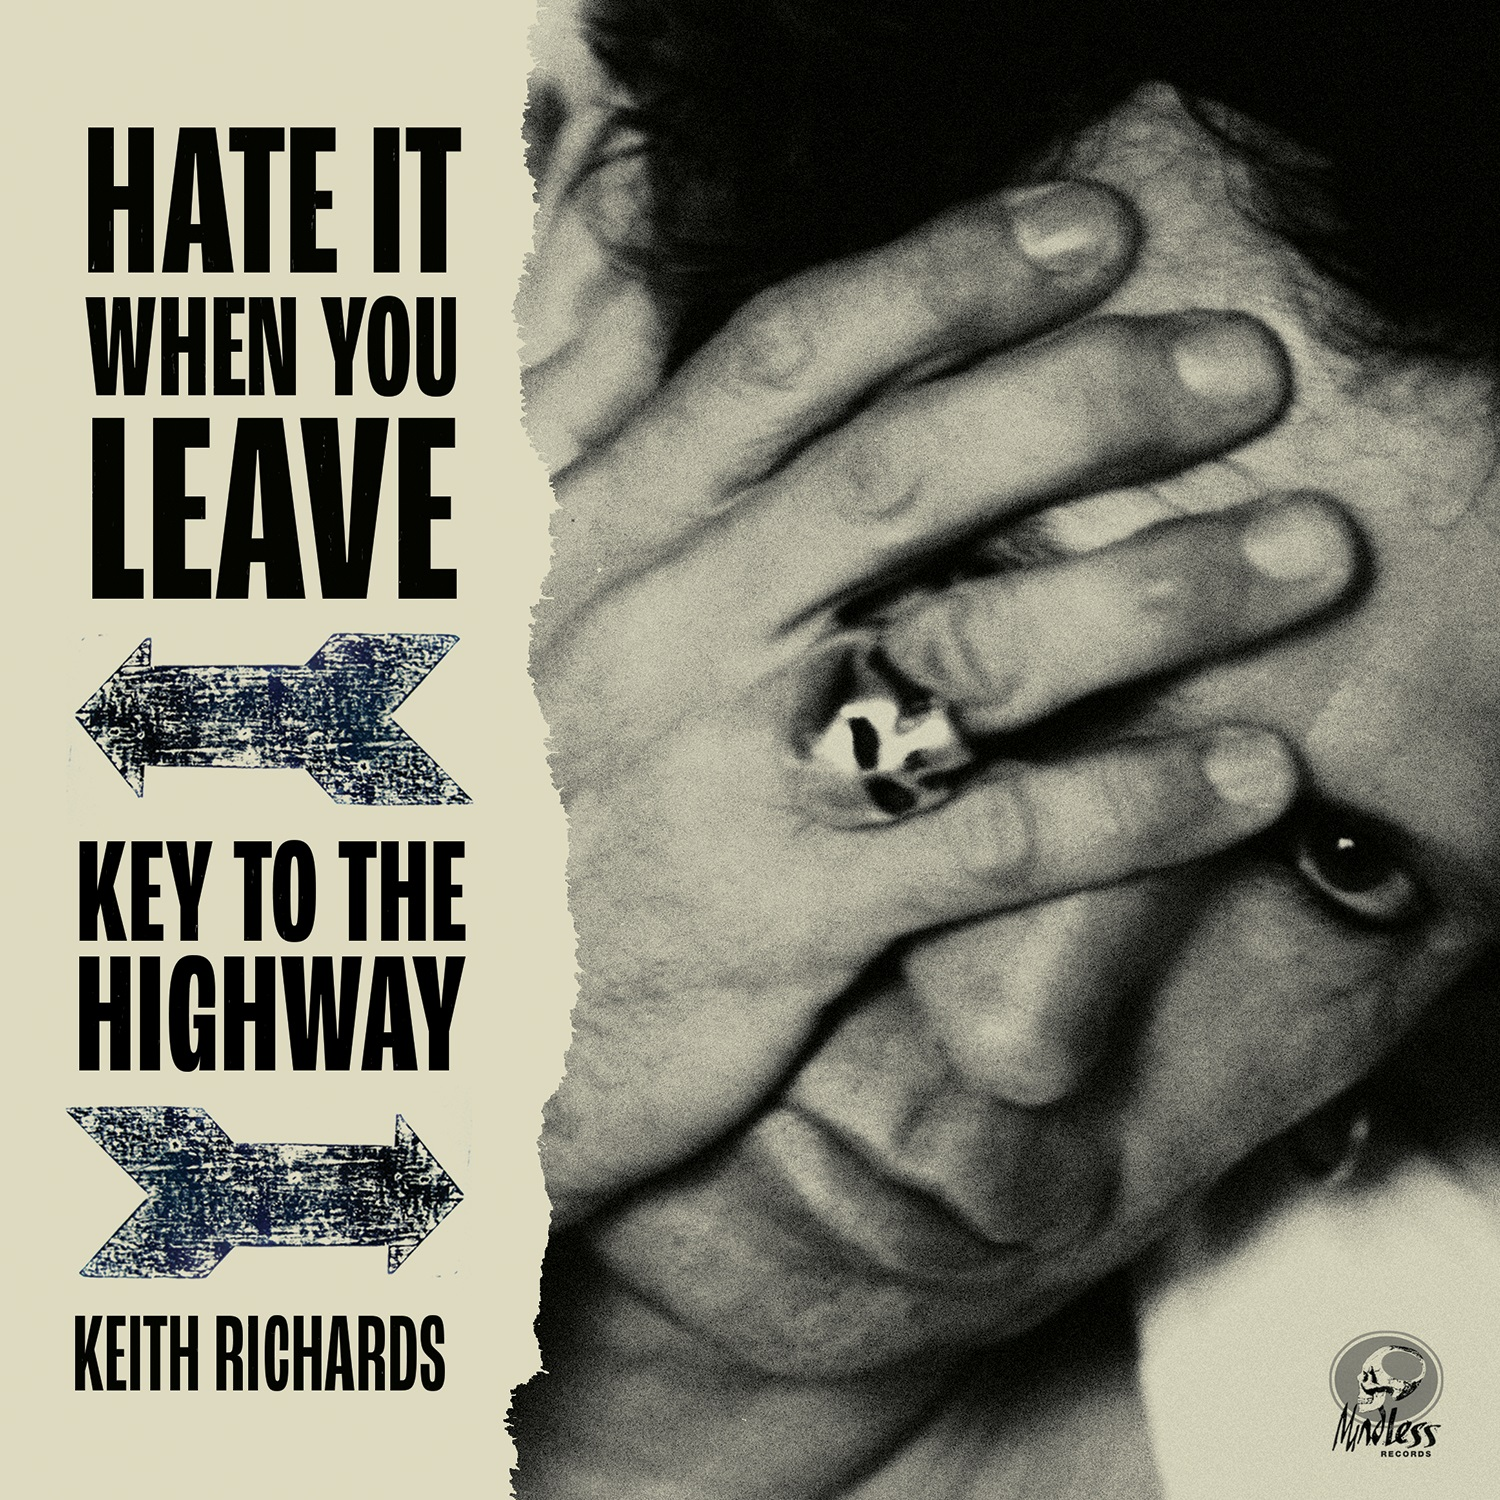 Keith Richards - Hate It When You Leave / Key To The Highway [RSD Drops Oct 2020]